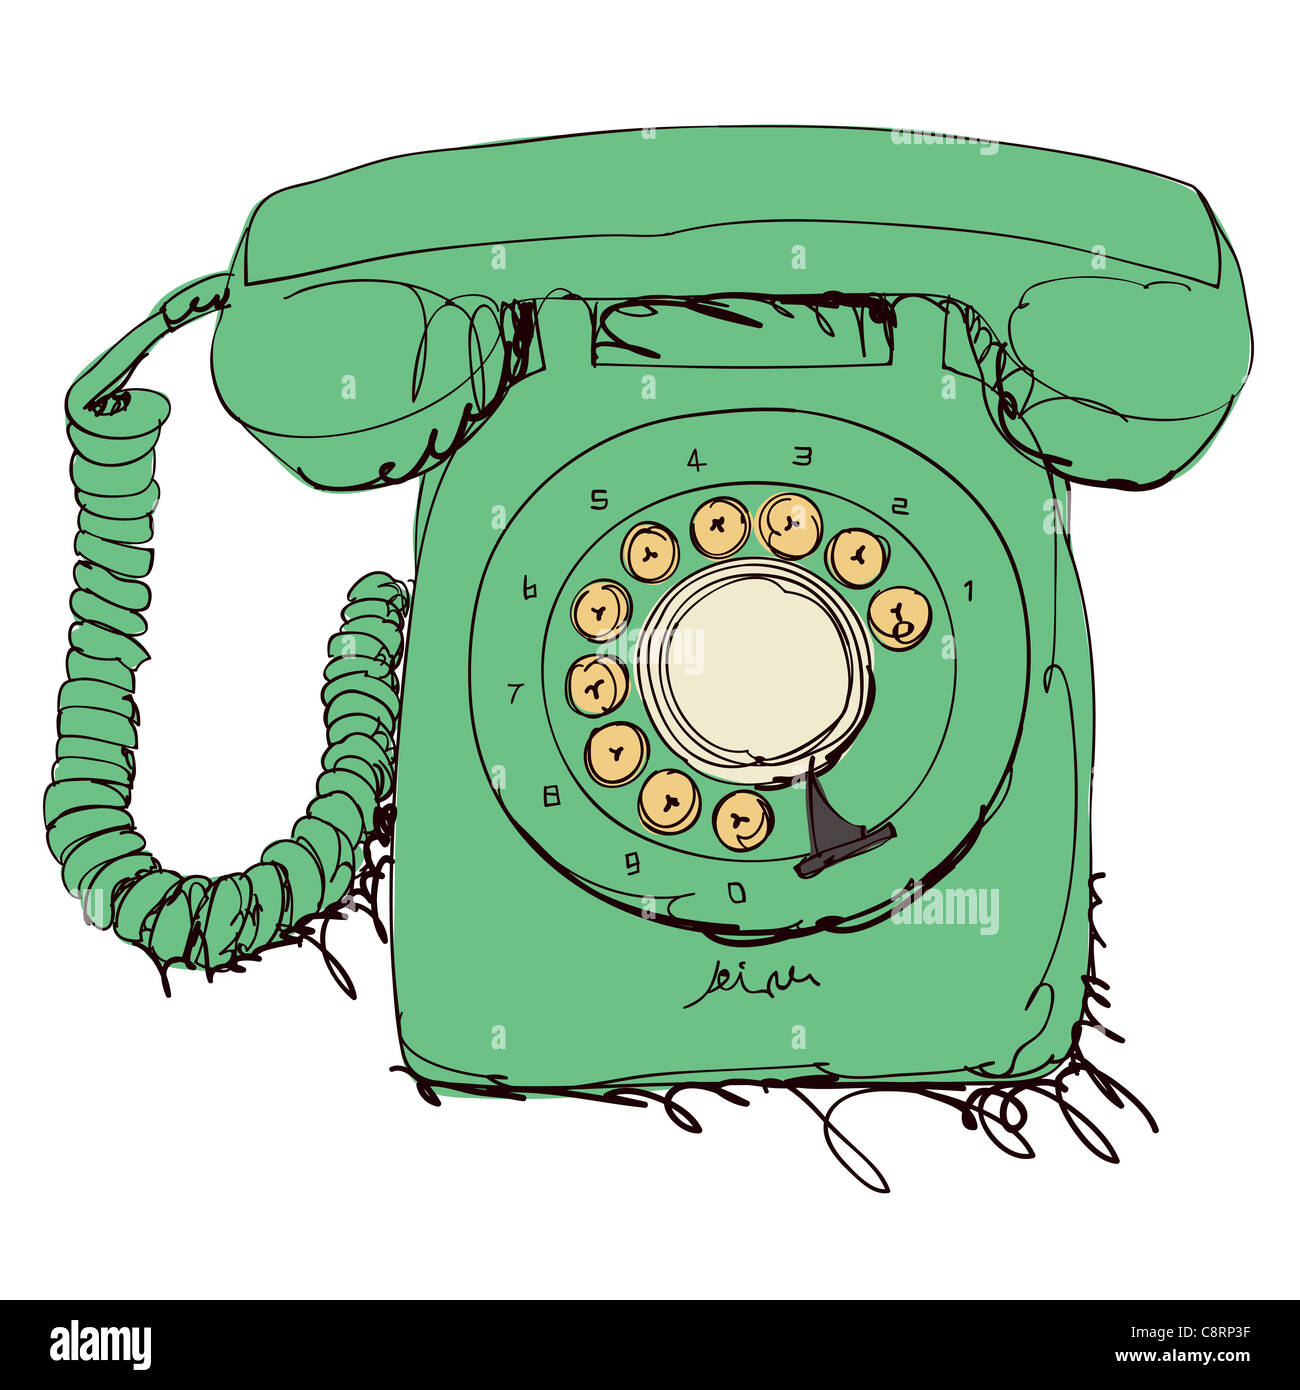 Retro Telefon Stockbild